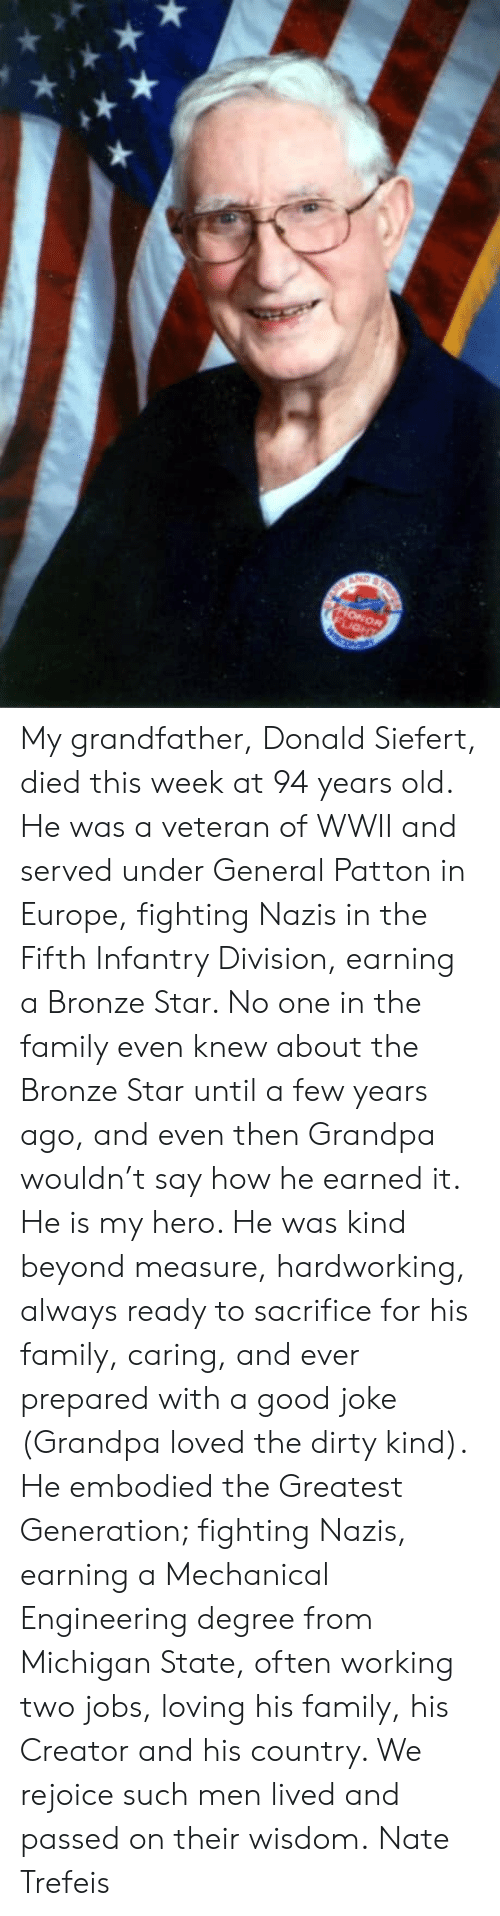 wwii: My grandfather, Donald Siefert, died this week at 94 years old.   He was a veteran of WWII and served under General Patton in Europe, fighting Nazis in the Fifth Infantry Division, earning a Bronze Star. No one in the family even knew about the Bronze Star until a few years ago, and even then Grandpa wouldn't say how he earned it.   He is my hero. He was kind beyond measure, hardworking, always ready to sacrifice for his family, caring, and ever prepared with a good joke (Grandpa loved the dirty kind).   He embodied the Greatest Generation; fighting Nazis, earning a Mechanical Engineering degree from Michigan State, often working two jobs, loving his family, his Creator and his country.   We rejoice such men lived and passed on their wisdom.  Nate Trefeis